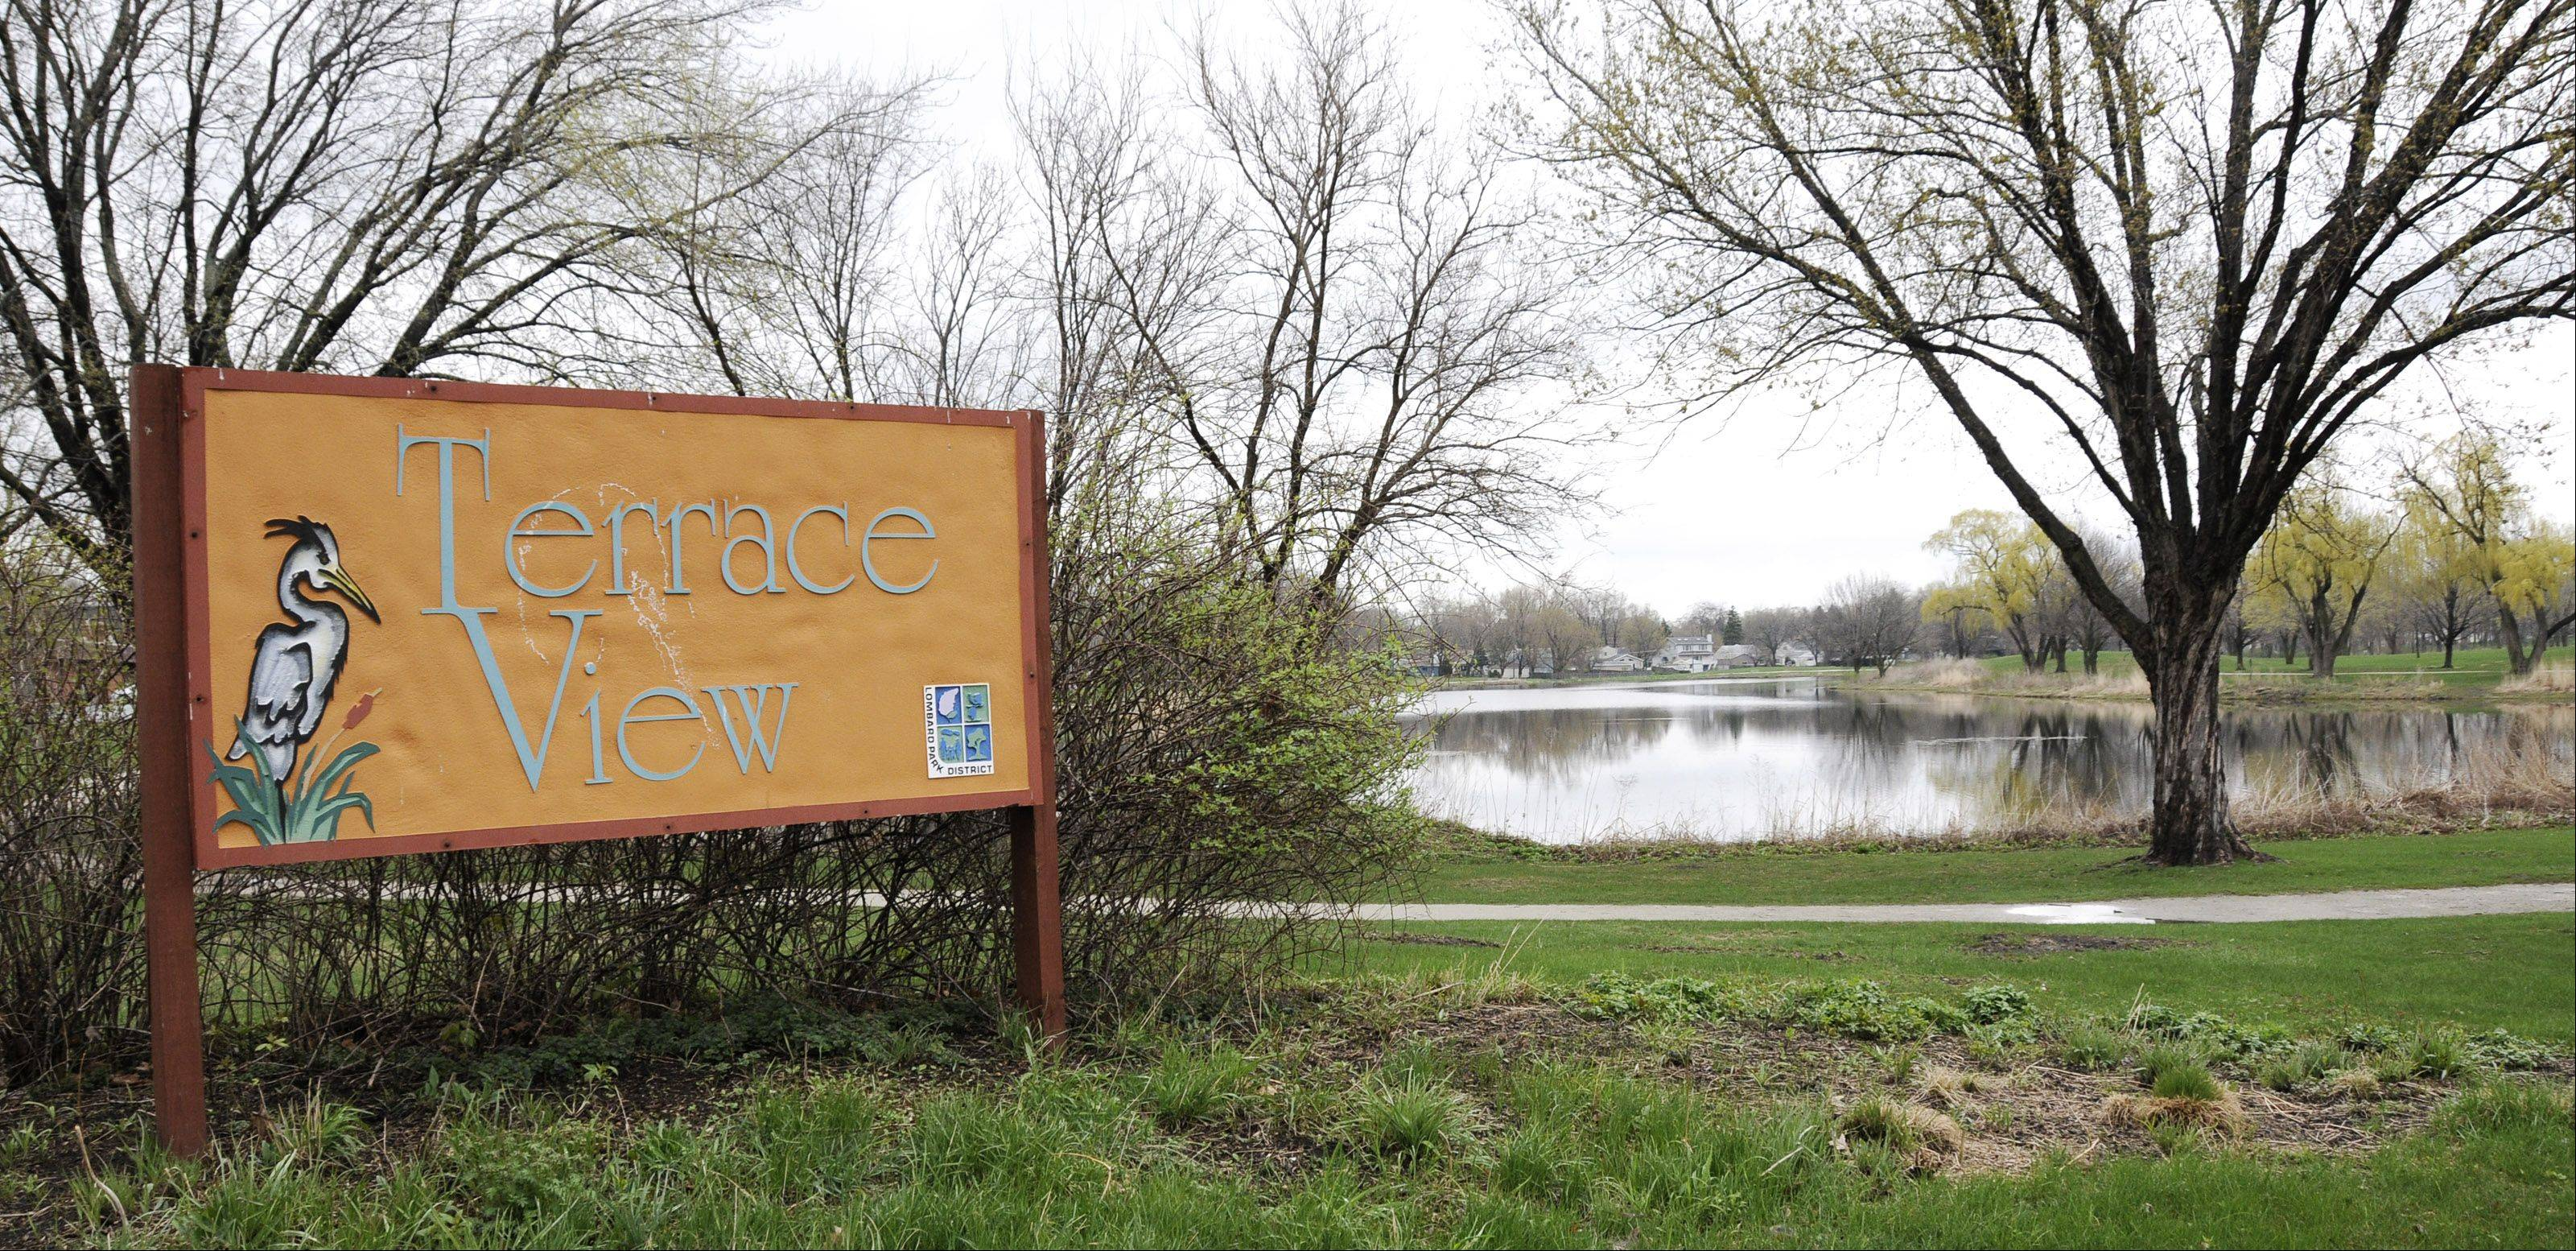 Neighbors of Terrace View Pond in Lombard wish the village and the park district would move faster on their plans to improve stormwater management at the site. A study of options to decrease the likelihood of flooding is expected to be complete by September.